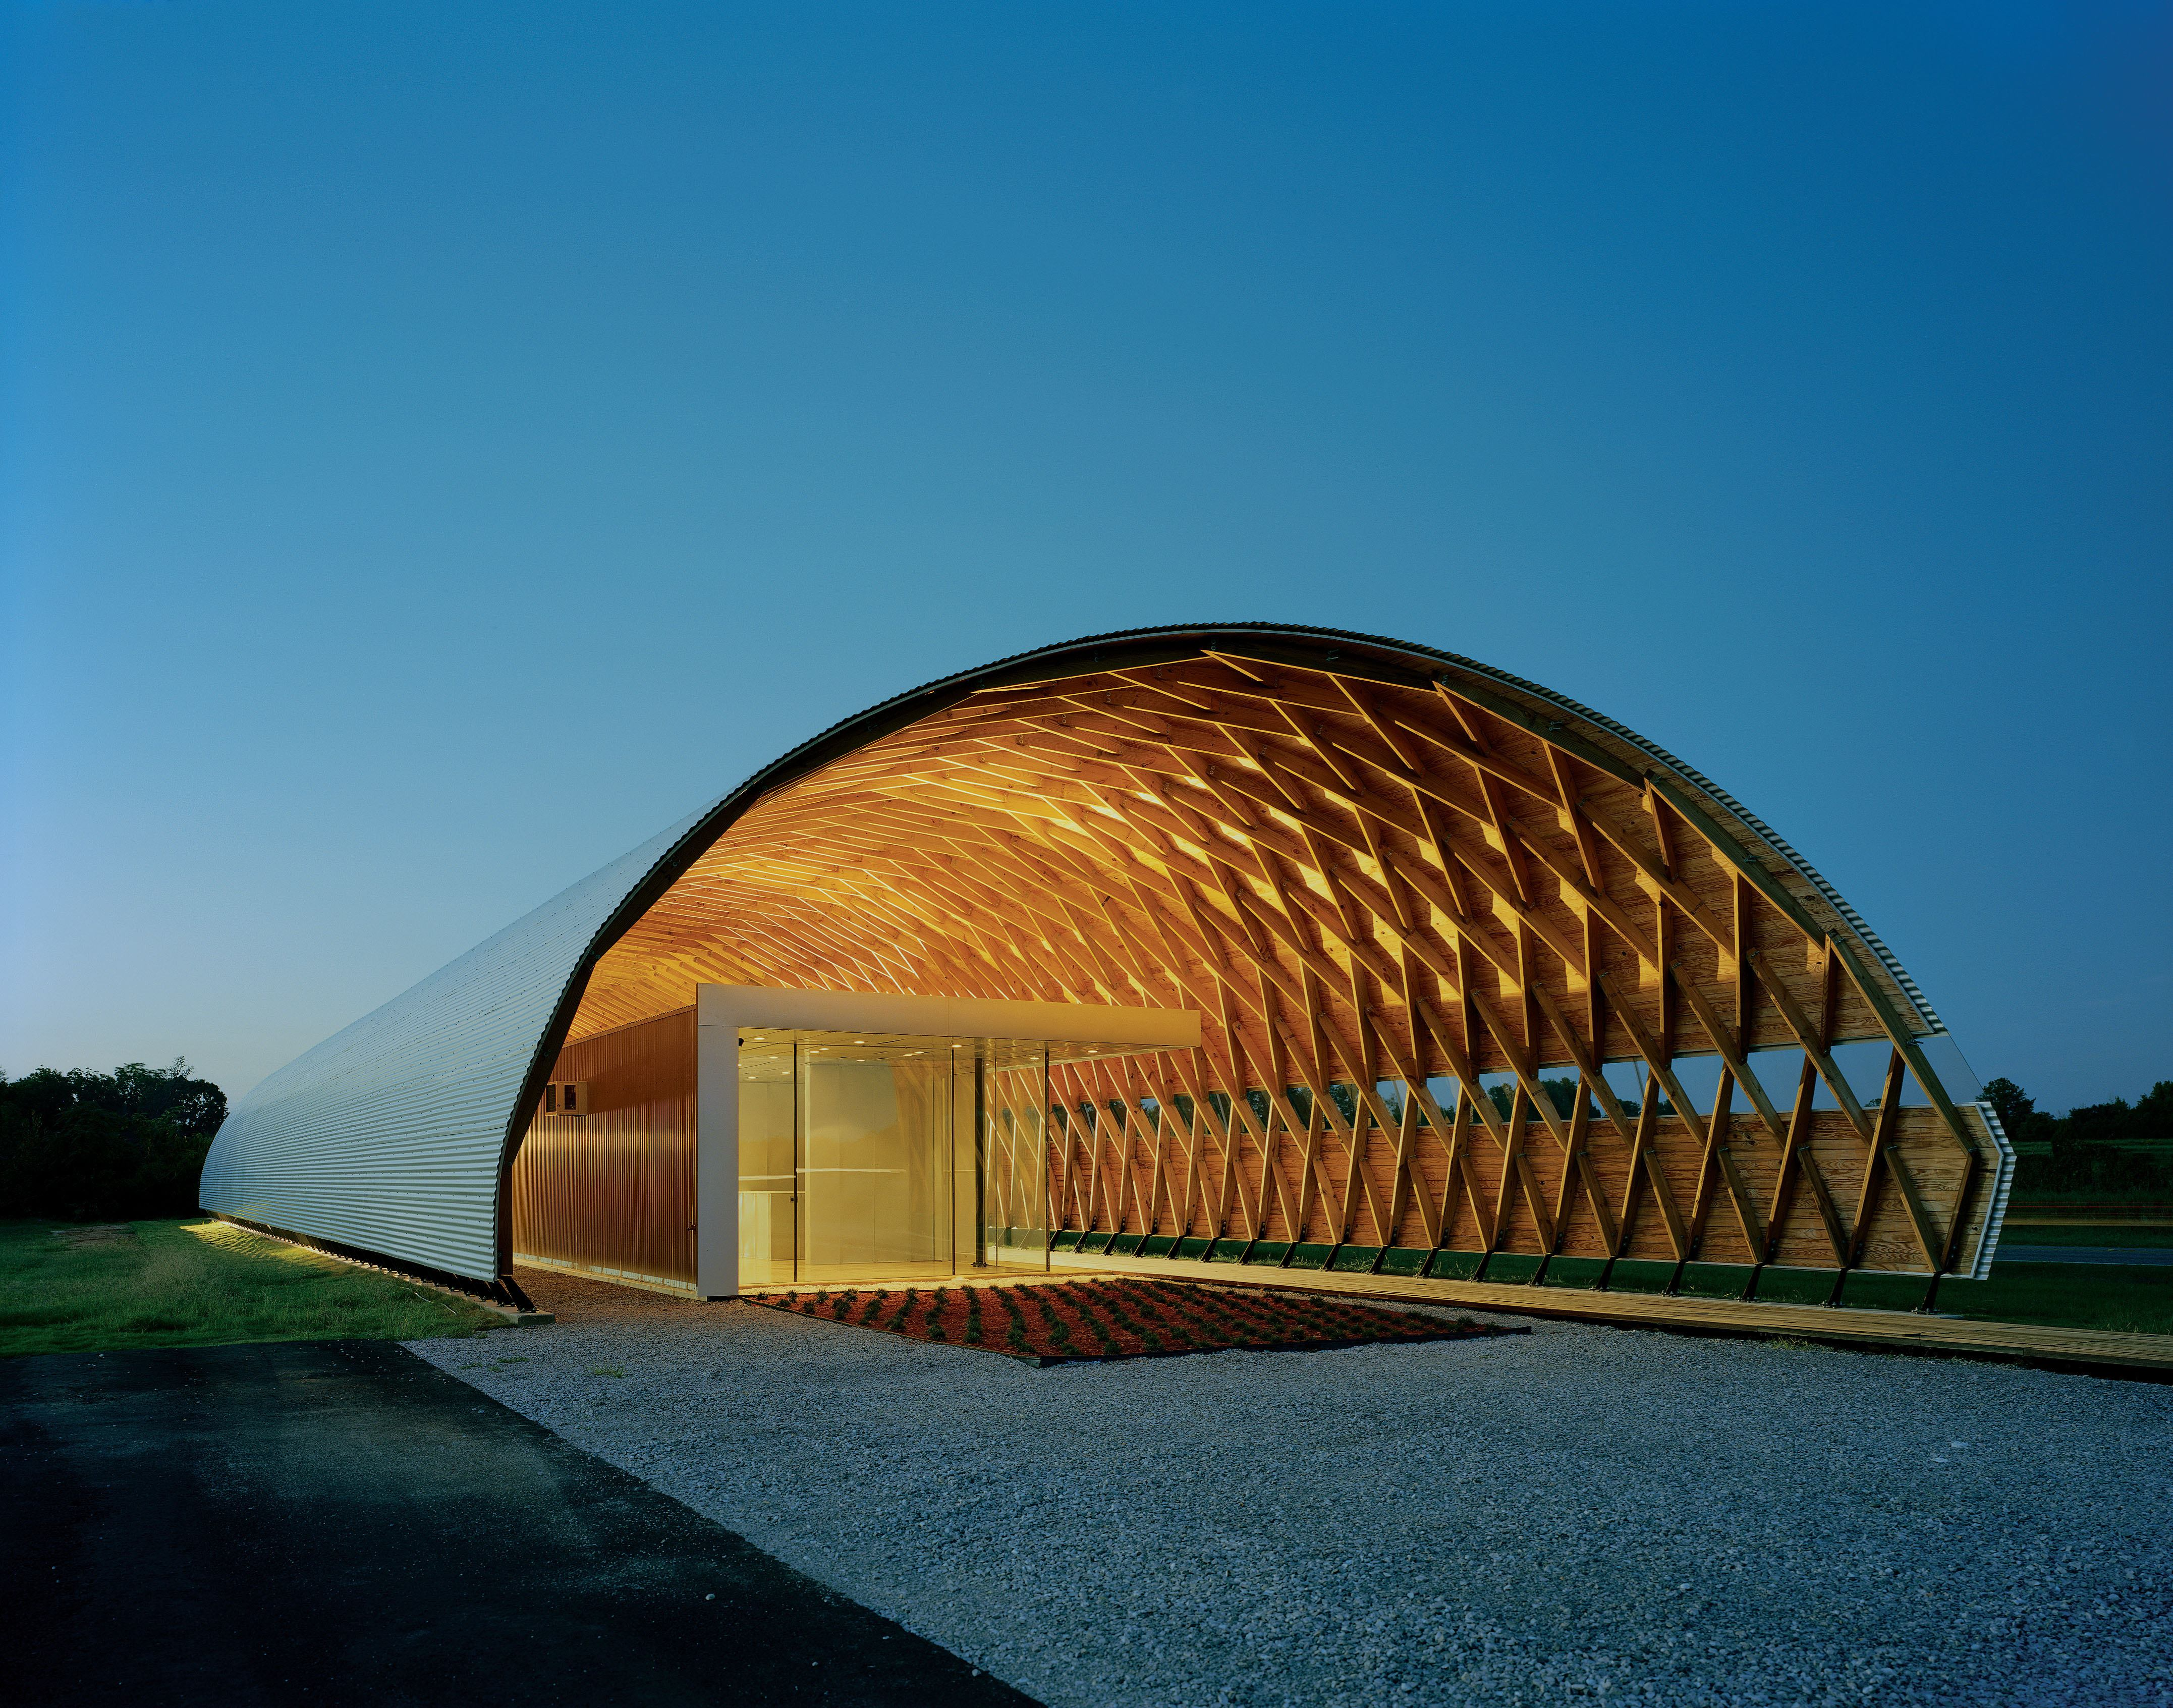 The new rural studio architect magazine design build community projects education for Architecture hangar